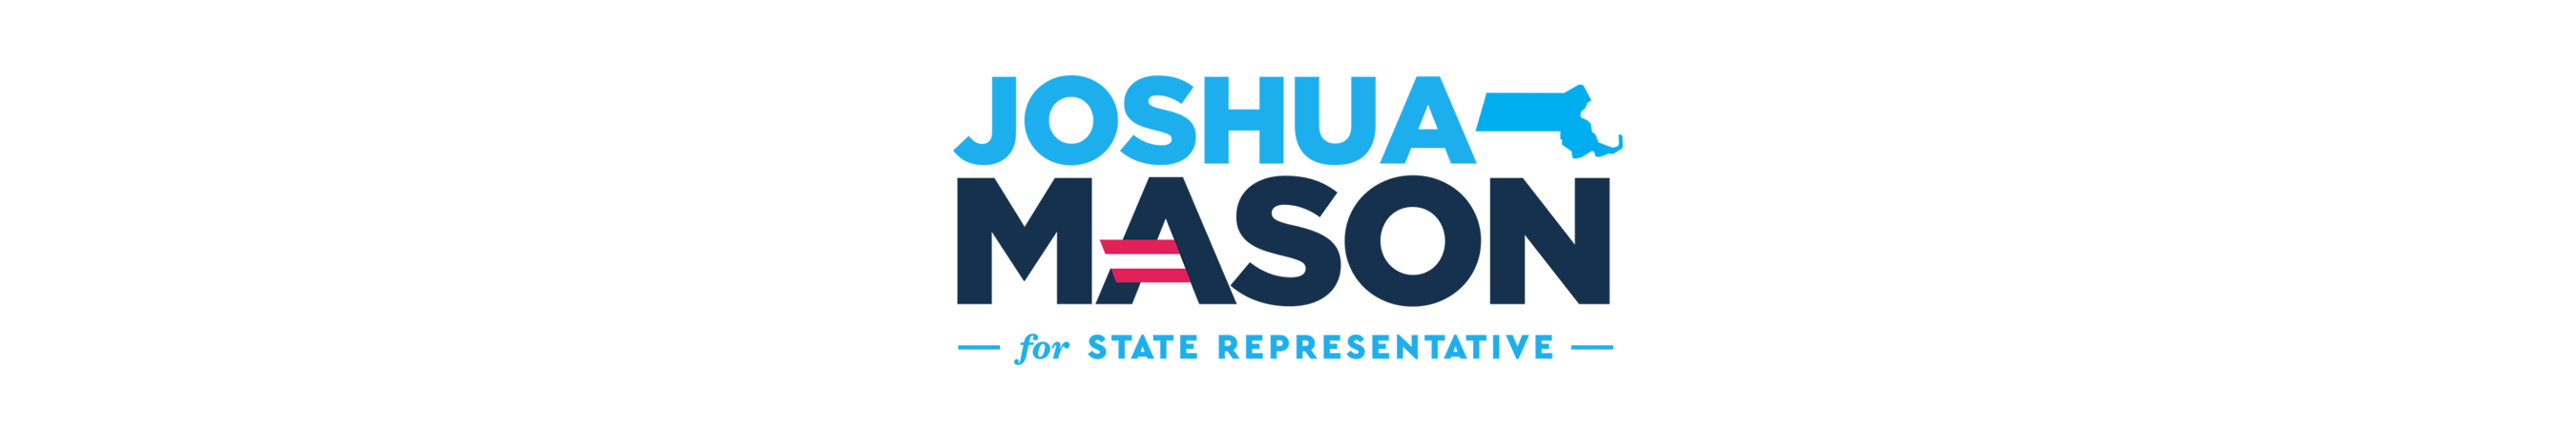 Joshua Mason for State Representative